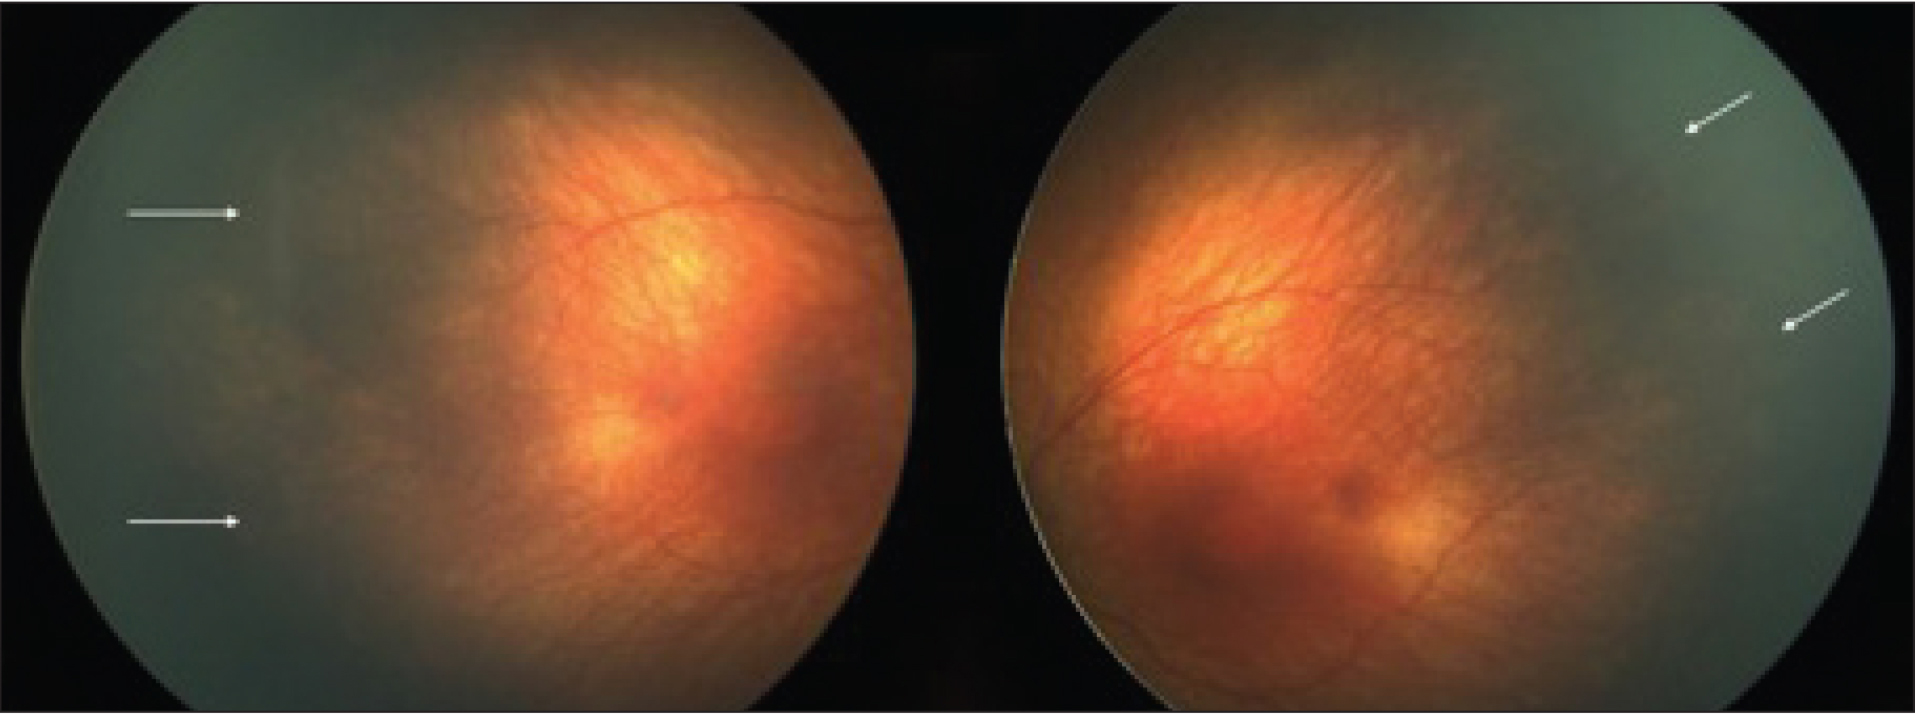 Postconceptual age of 42 weeks: stage 1 retinopathy of prematurity in zone II with 6 clock hours of involvement and no plus disease in both eyes.